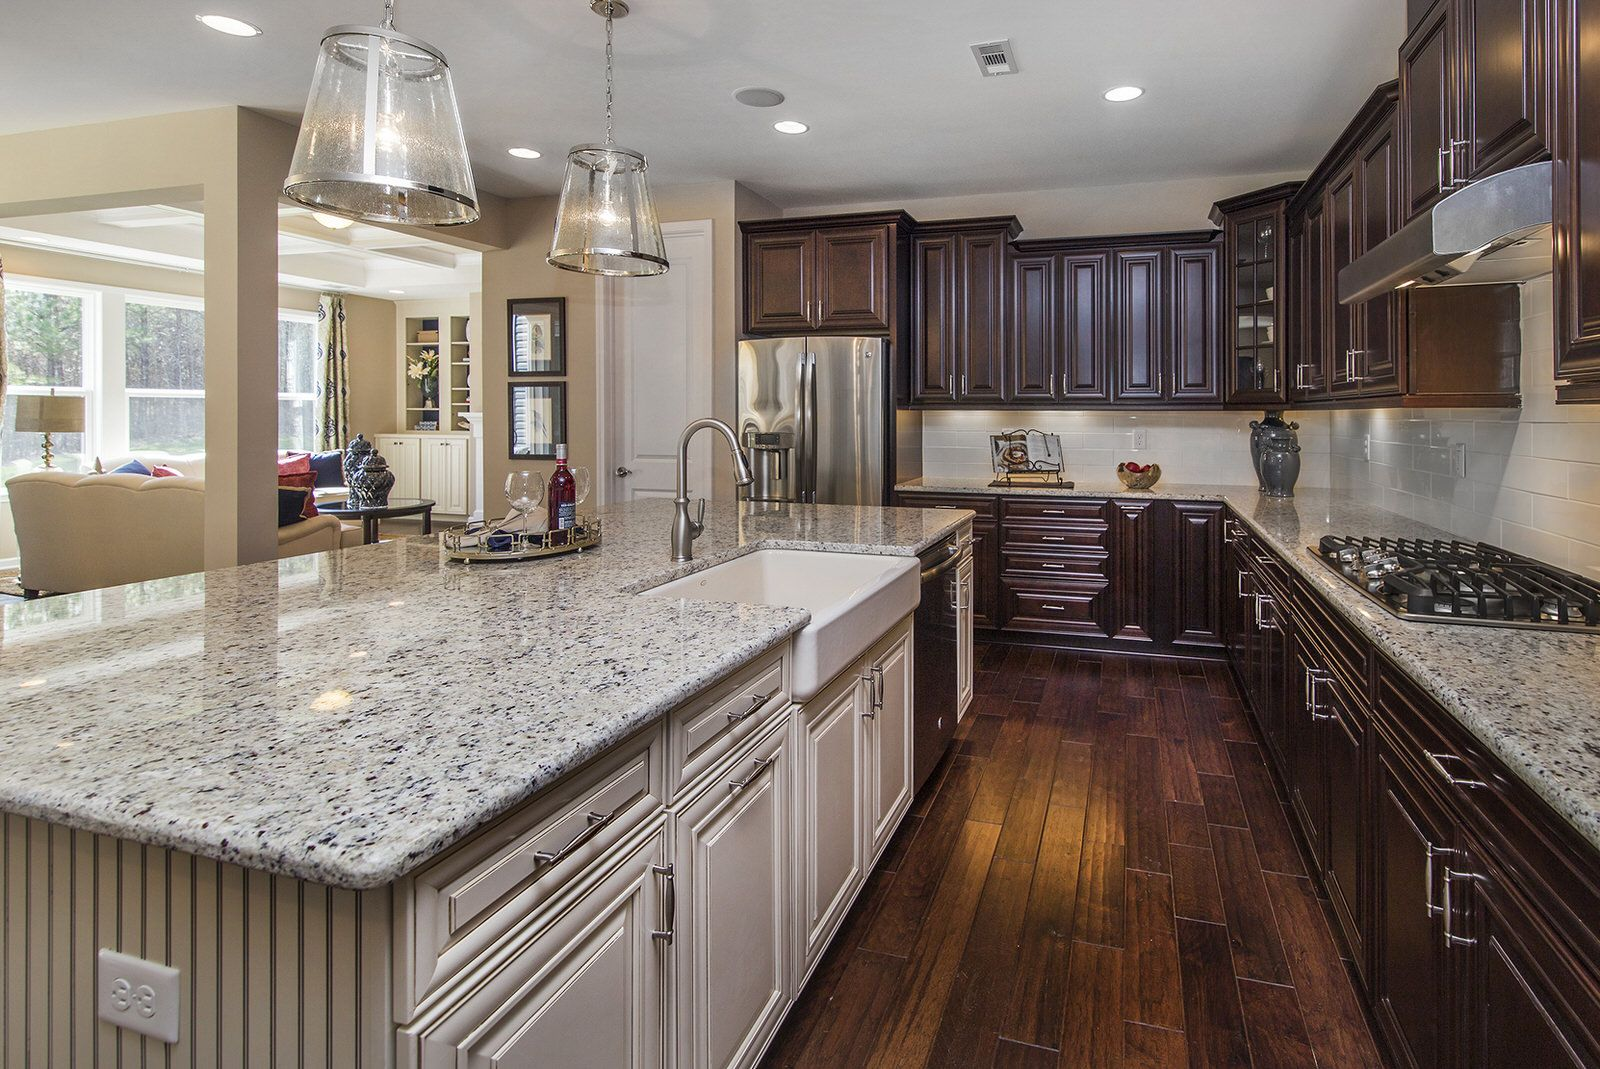 Kitchen featured in the Pikewood By Taylor Morrison in Charlotte, NC